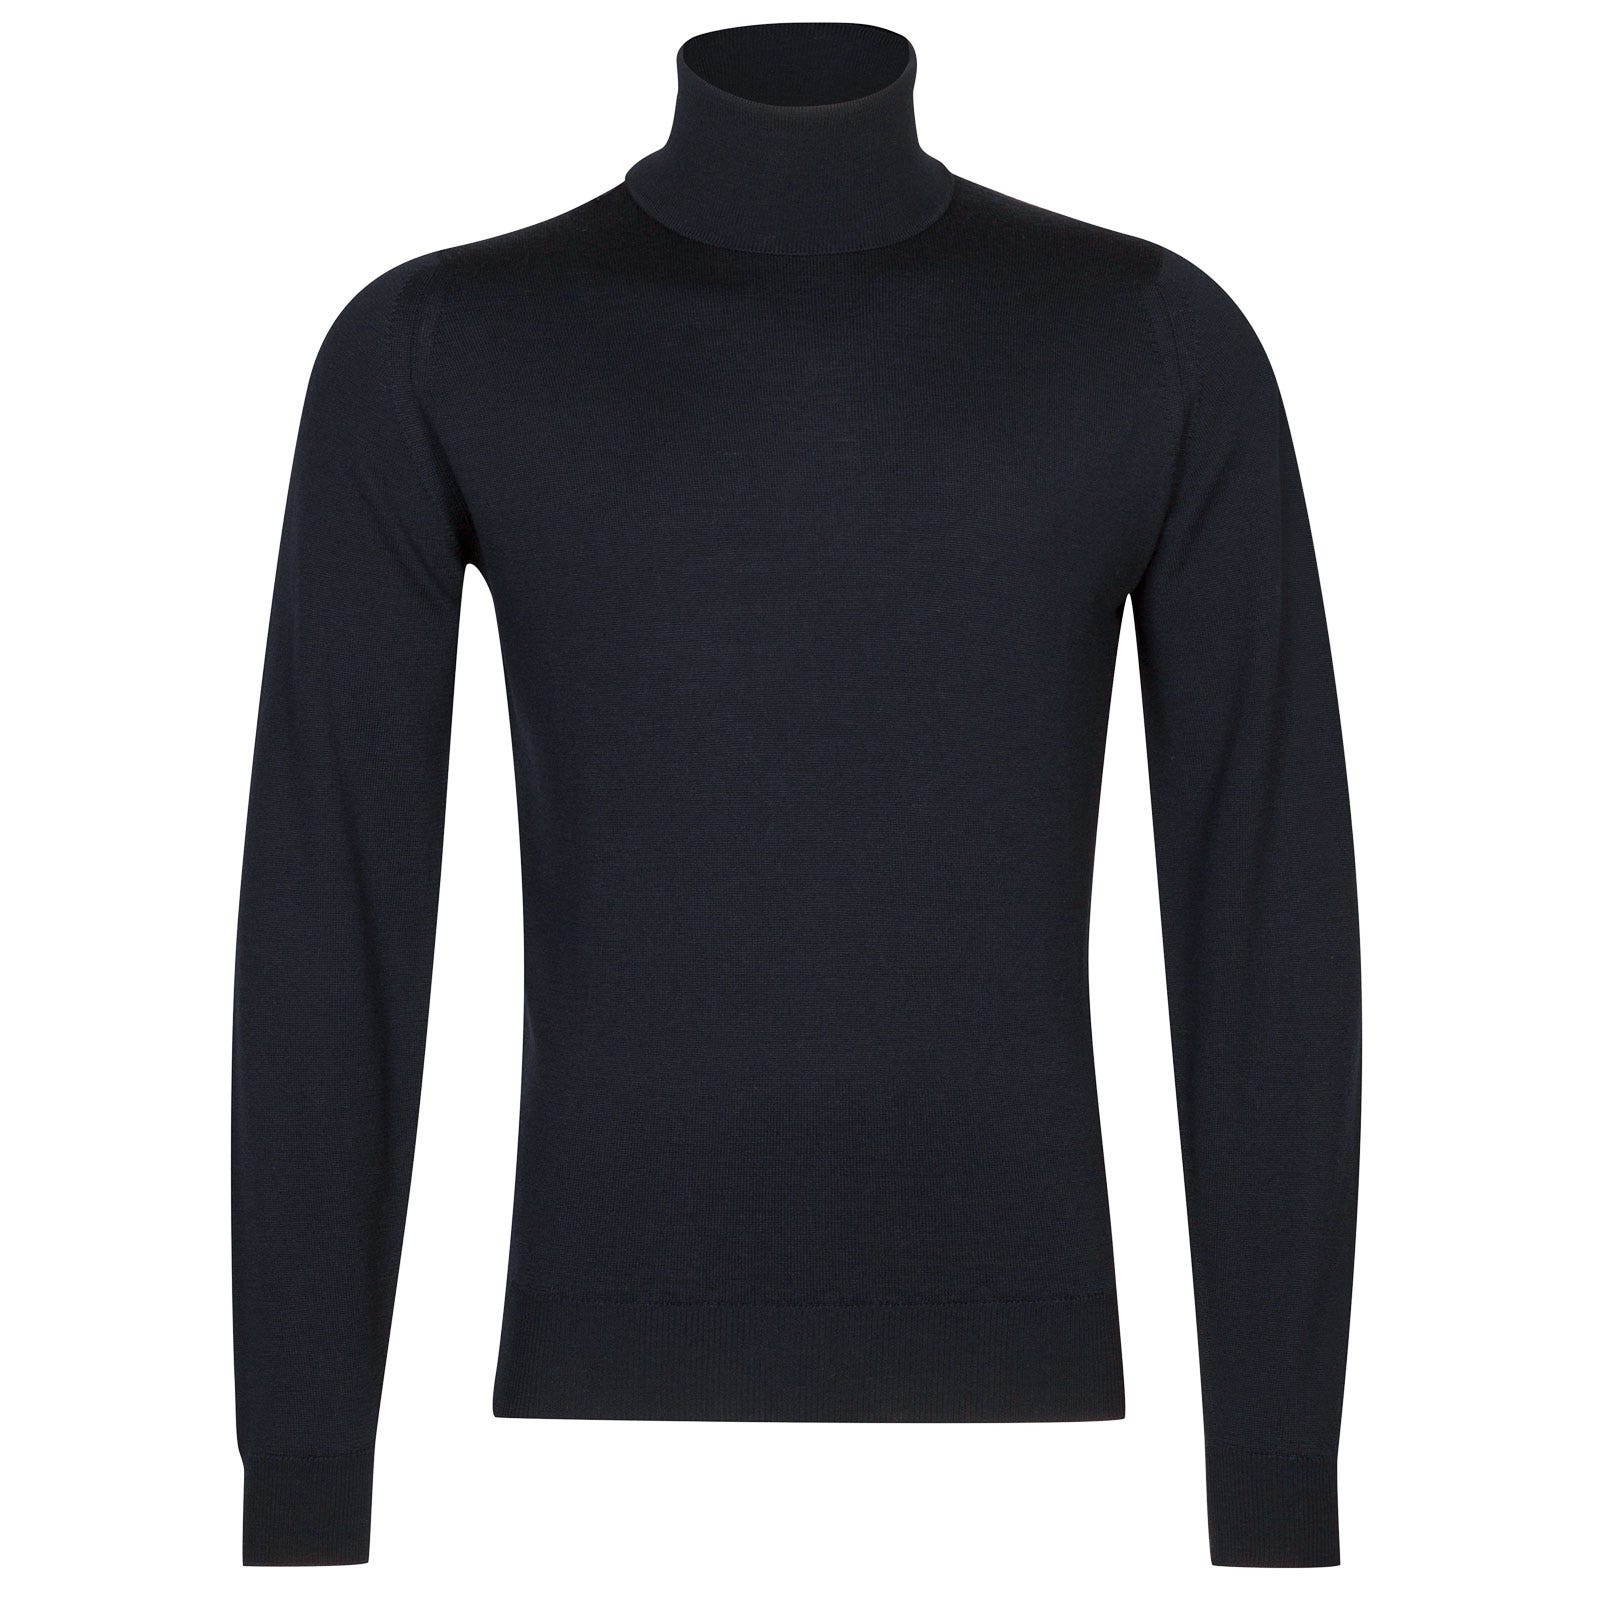 John Smedley connell Merino Wool Pullover in Midnight-S